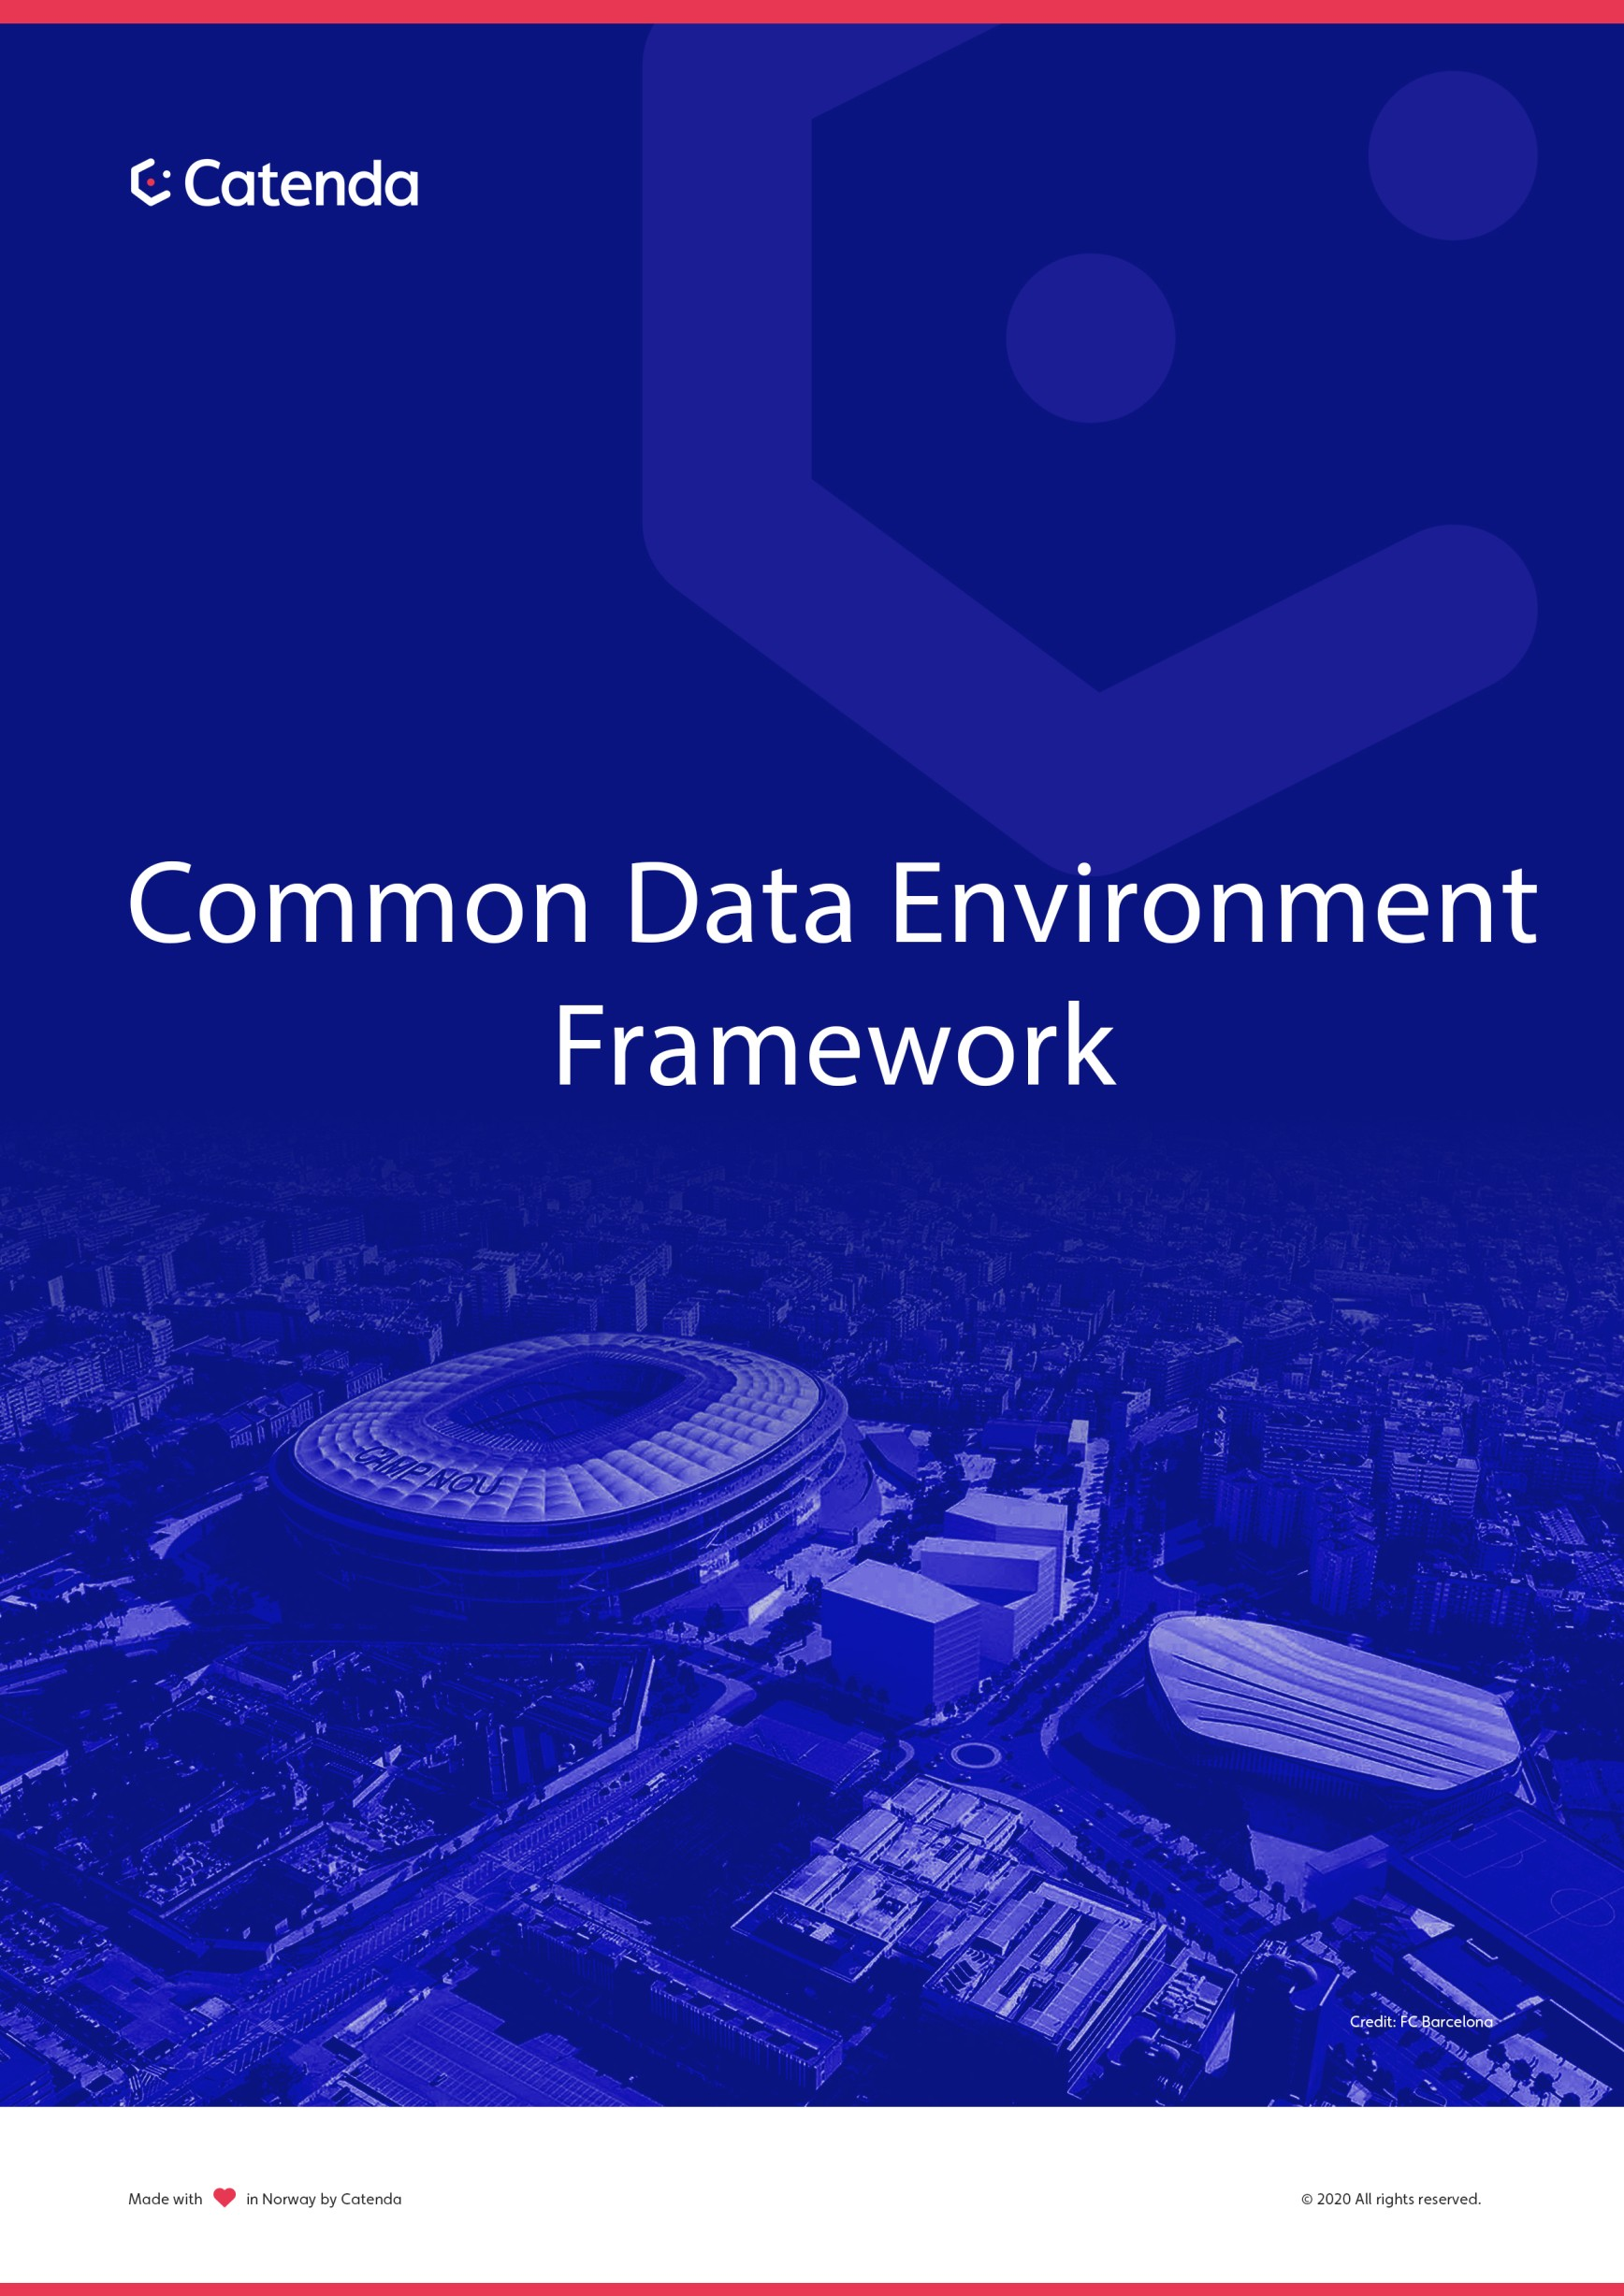 Common Data Environments comparison tool